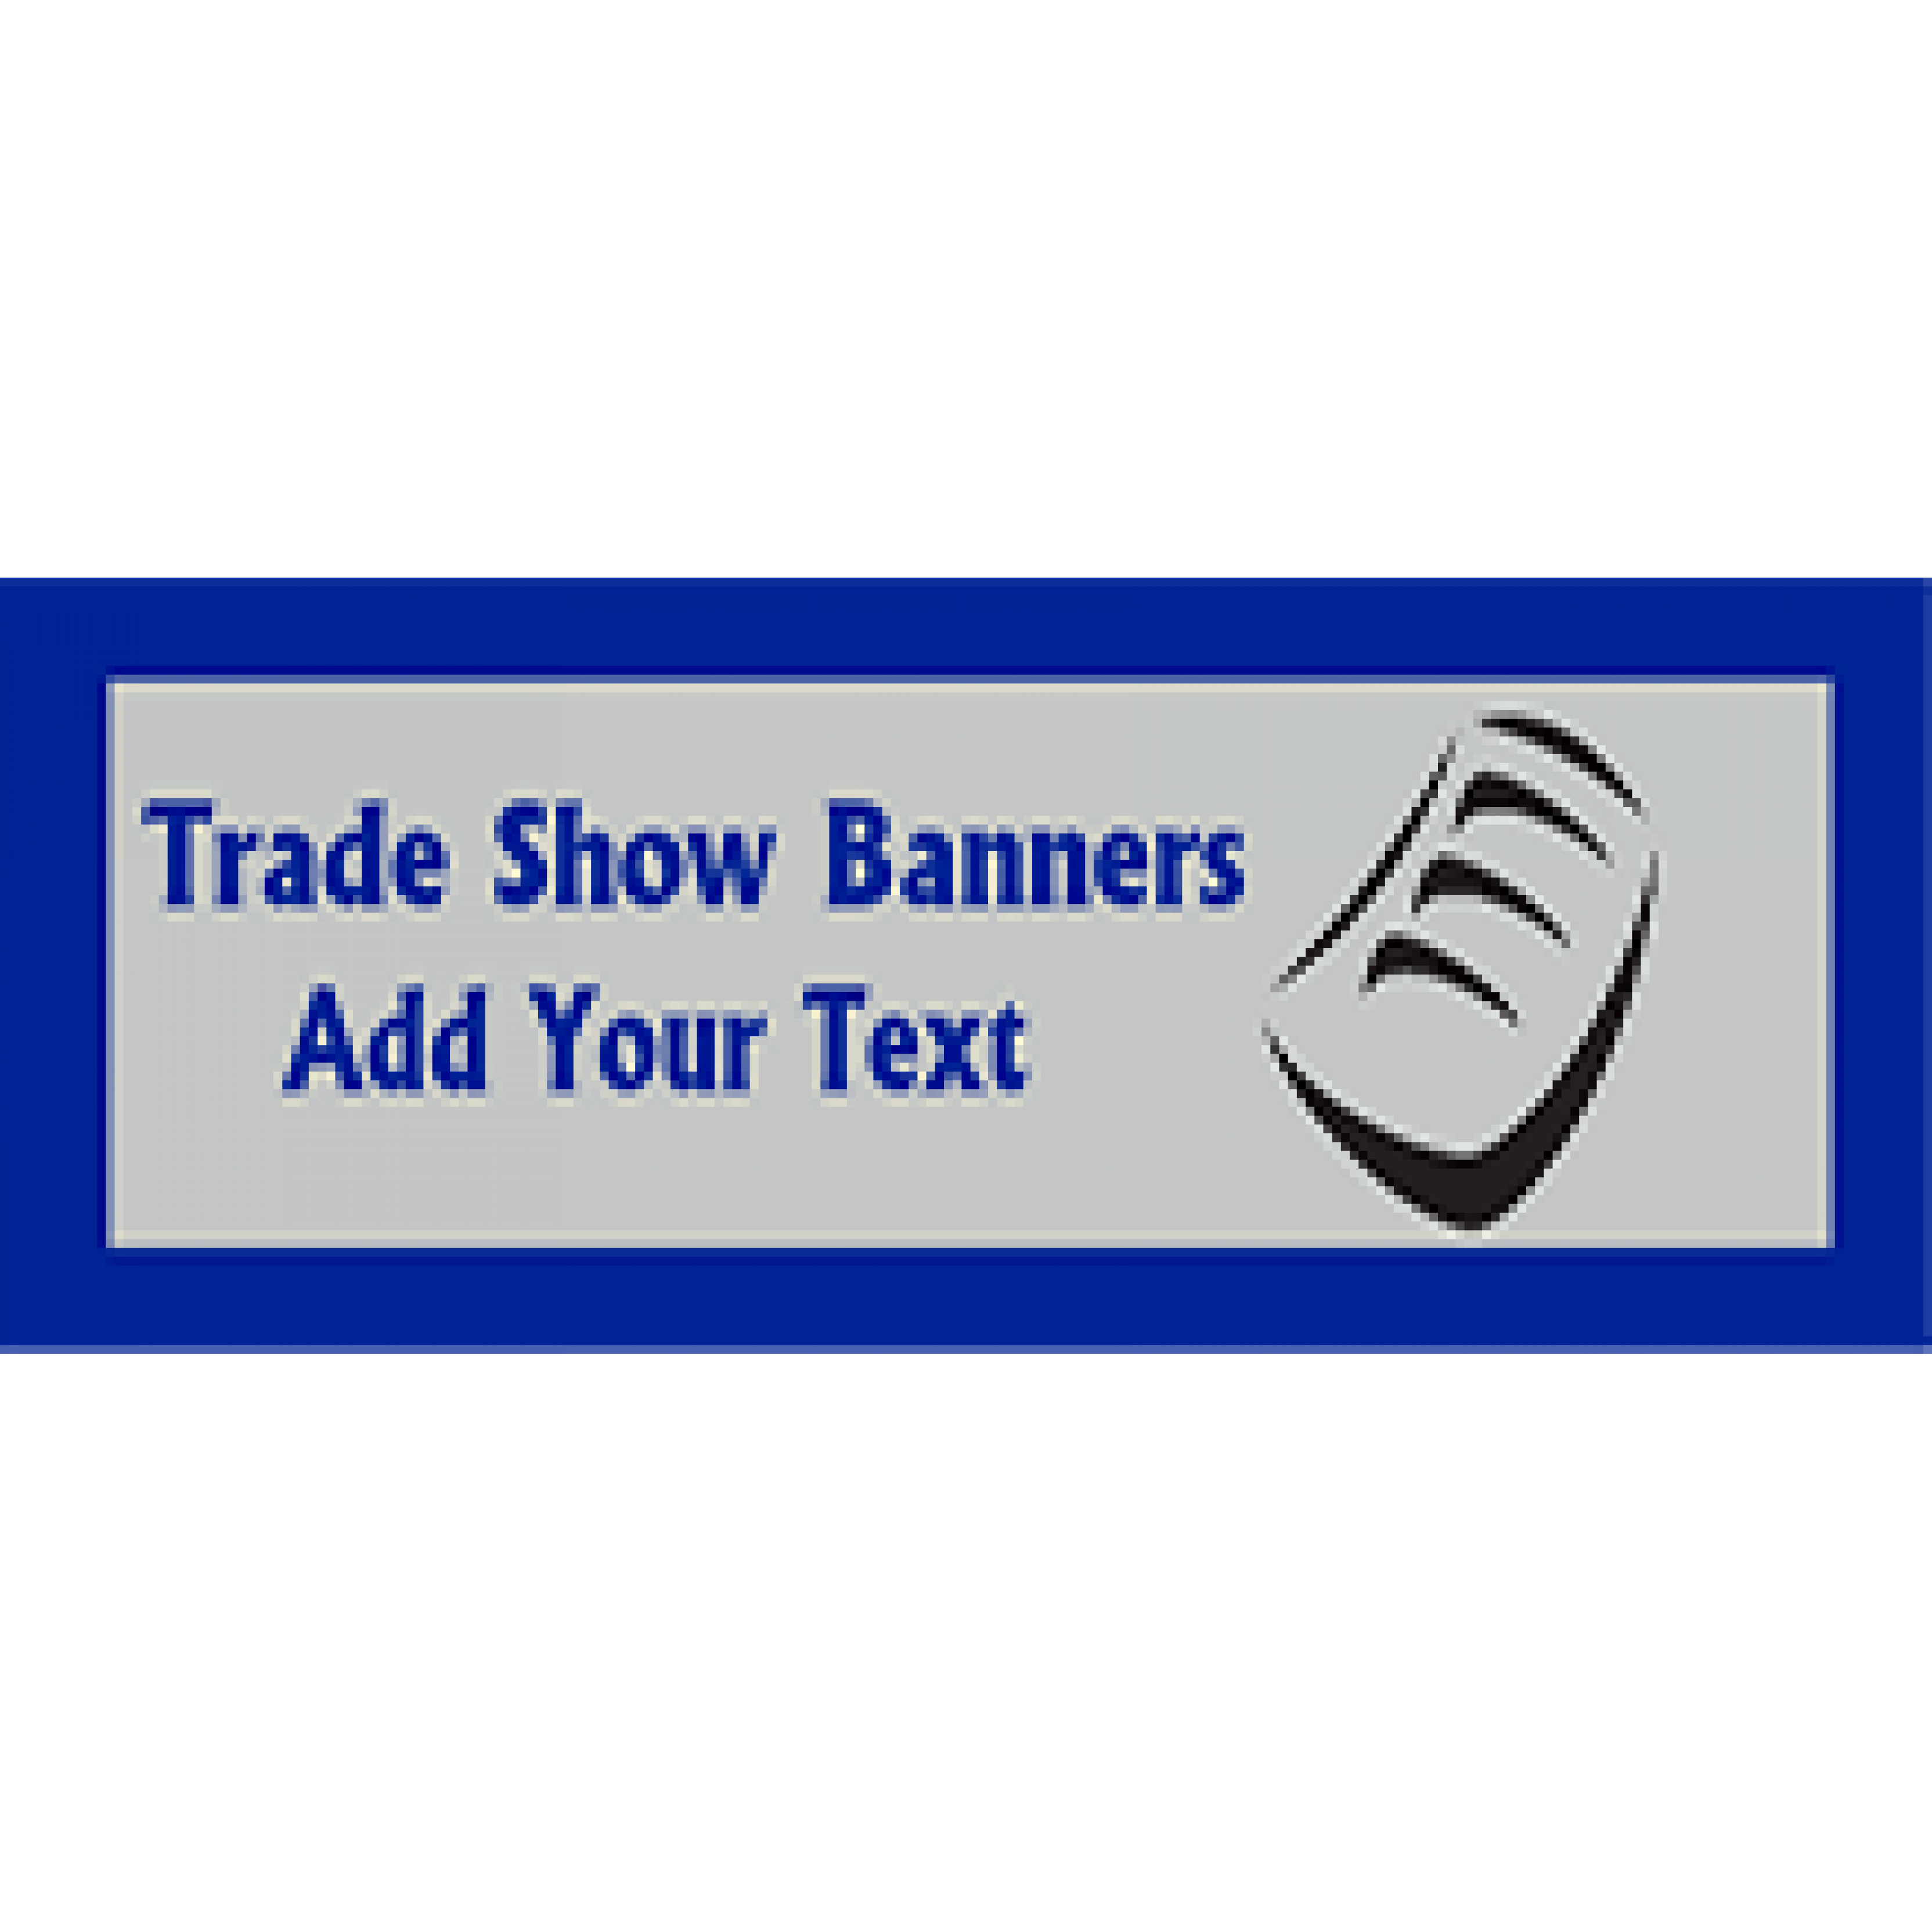 Trade Show Banner 36x120 inches